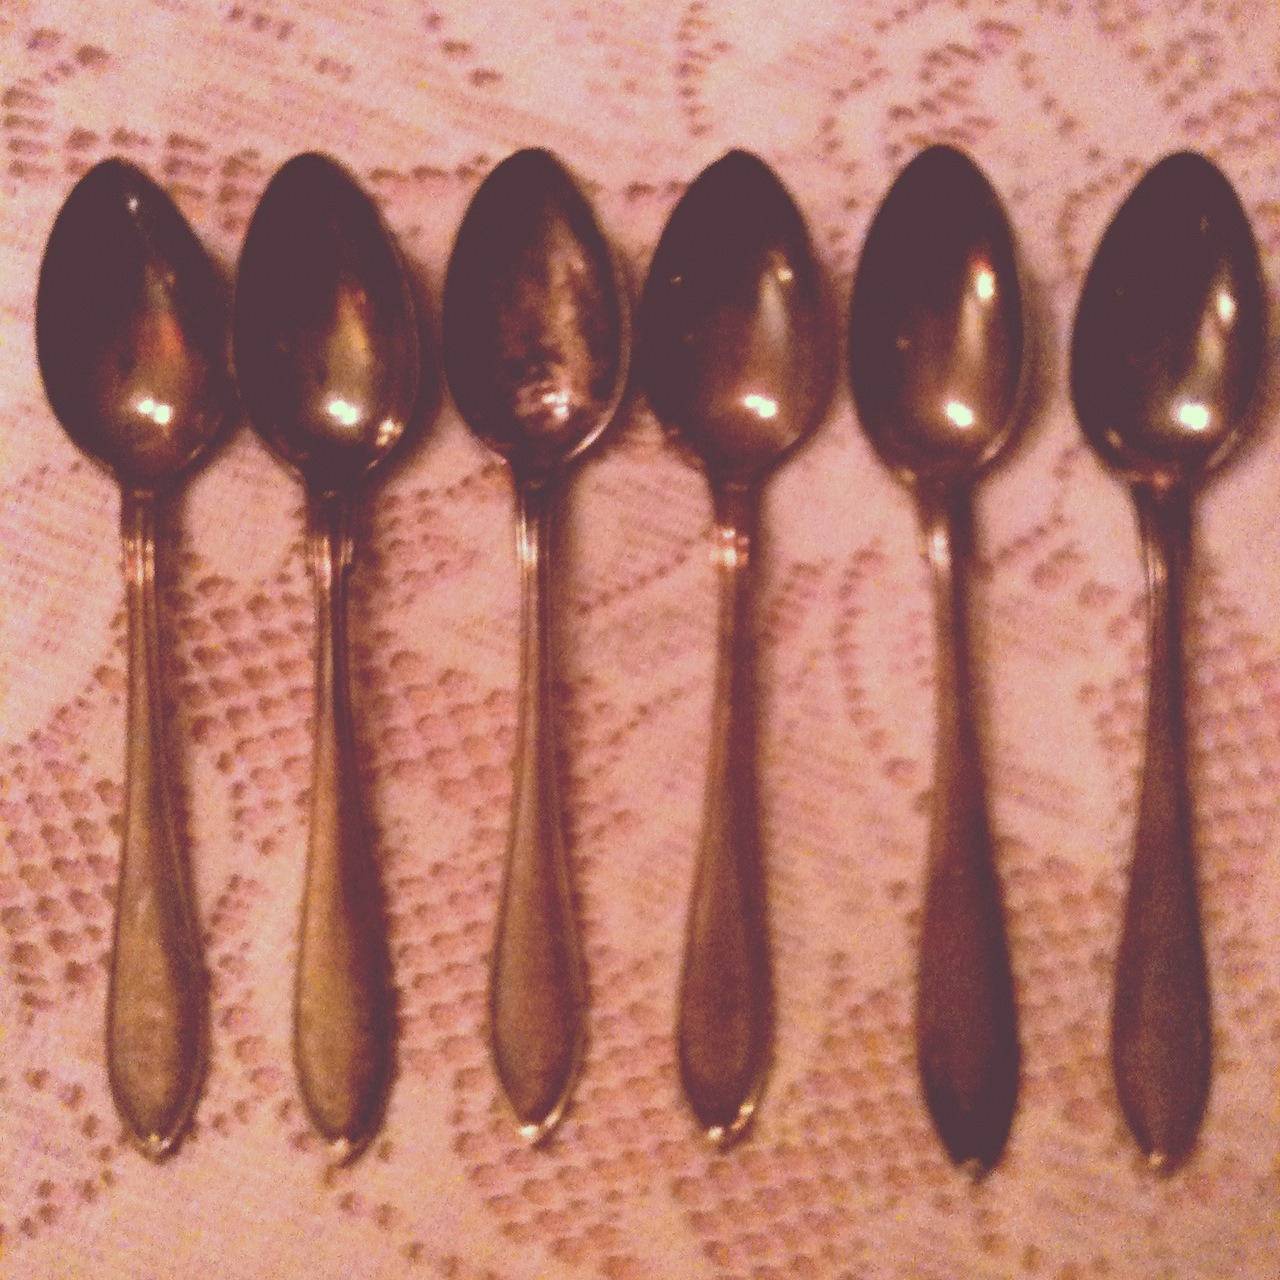 One spoon, two spoon, three spoon, four spoon, five spoon, six spoon! Heh heh heh heh. (My horrible impression of being that counting count count guy who counts on Sesame Street.)